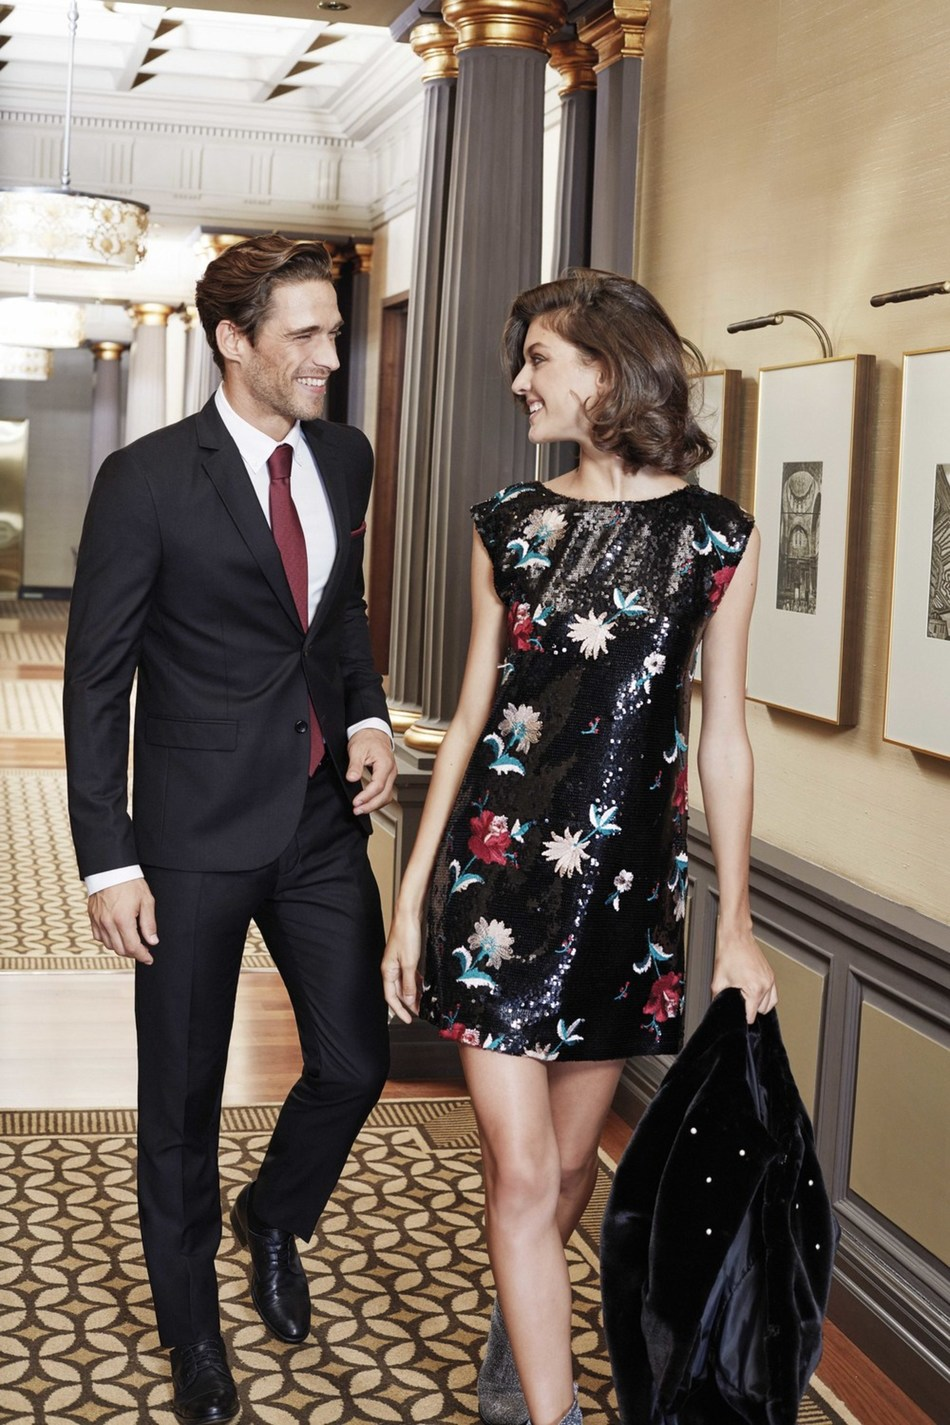 LC Waikiki New Year Collection for Men will include suits designed with a tailored fit and high quality  fabrics. Black and white will be the base of this collection; suiting well with the women's collection. (PRNewsfoto/LC Waikiki)